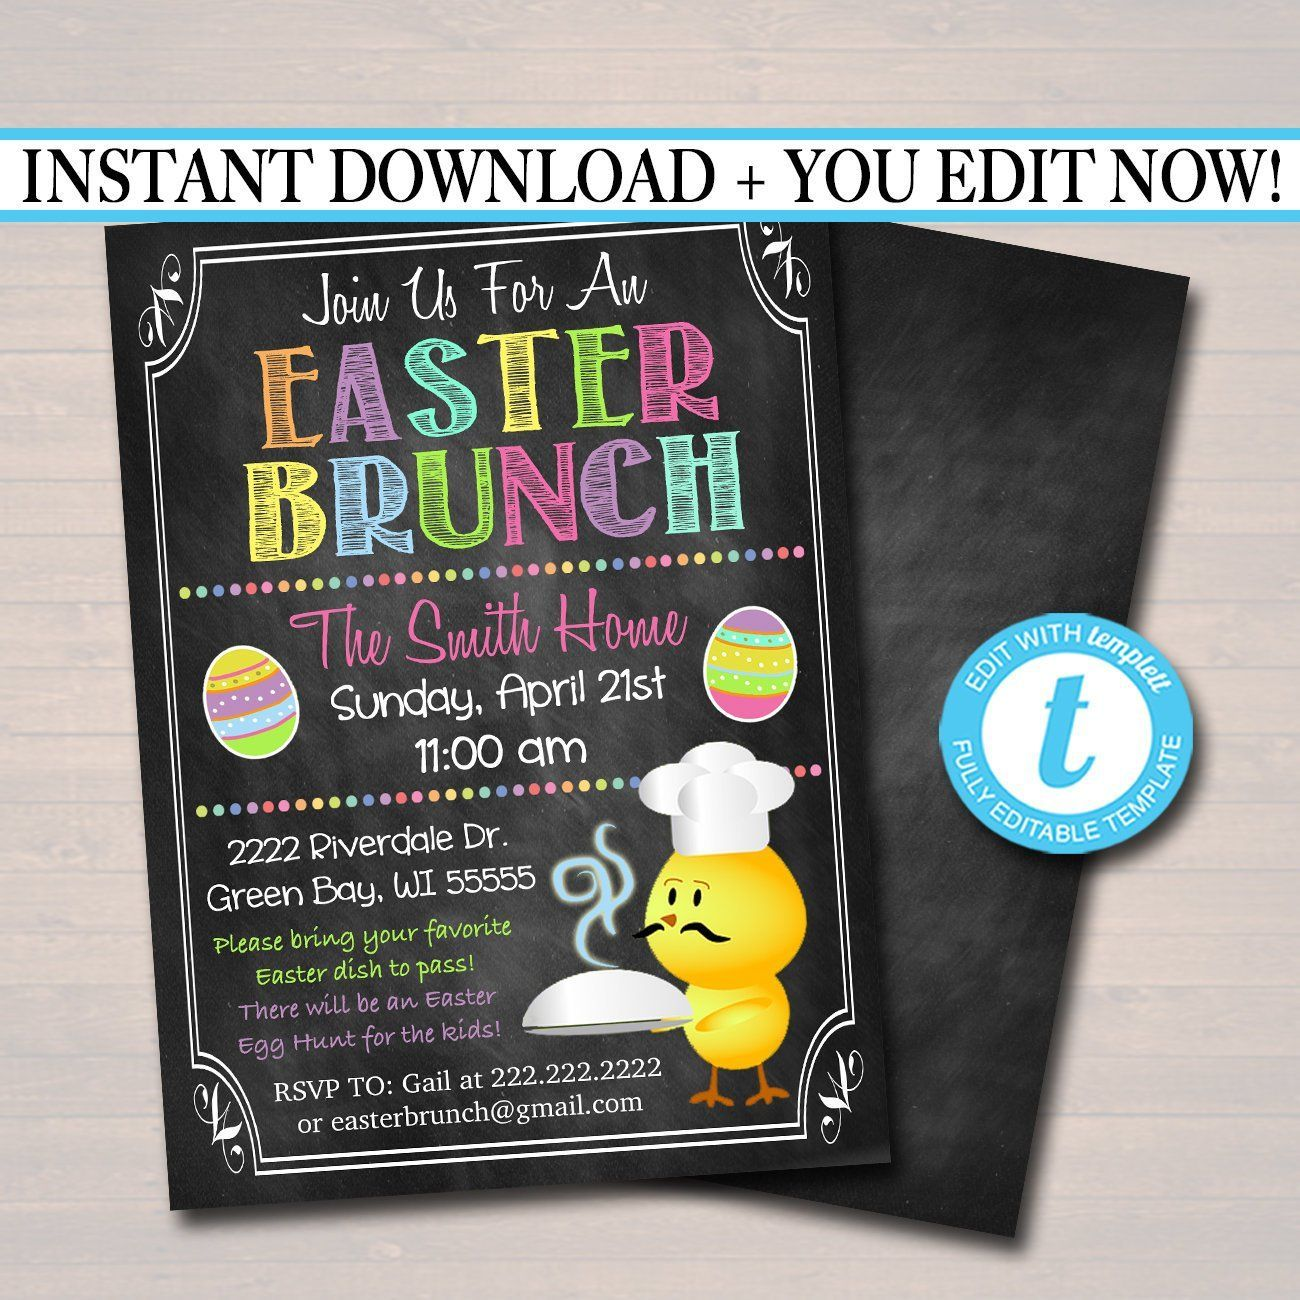 Easter Brunch Invitation, Easter Party  Invite, Printable Kids Easter Party, Easter Bunny Invitation - #brunch #bunny #easter #invitation #Invite #Kids #party #printable